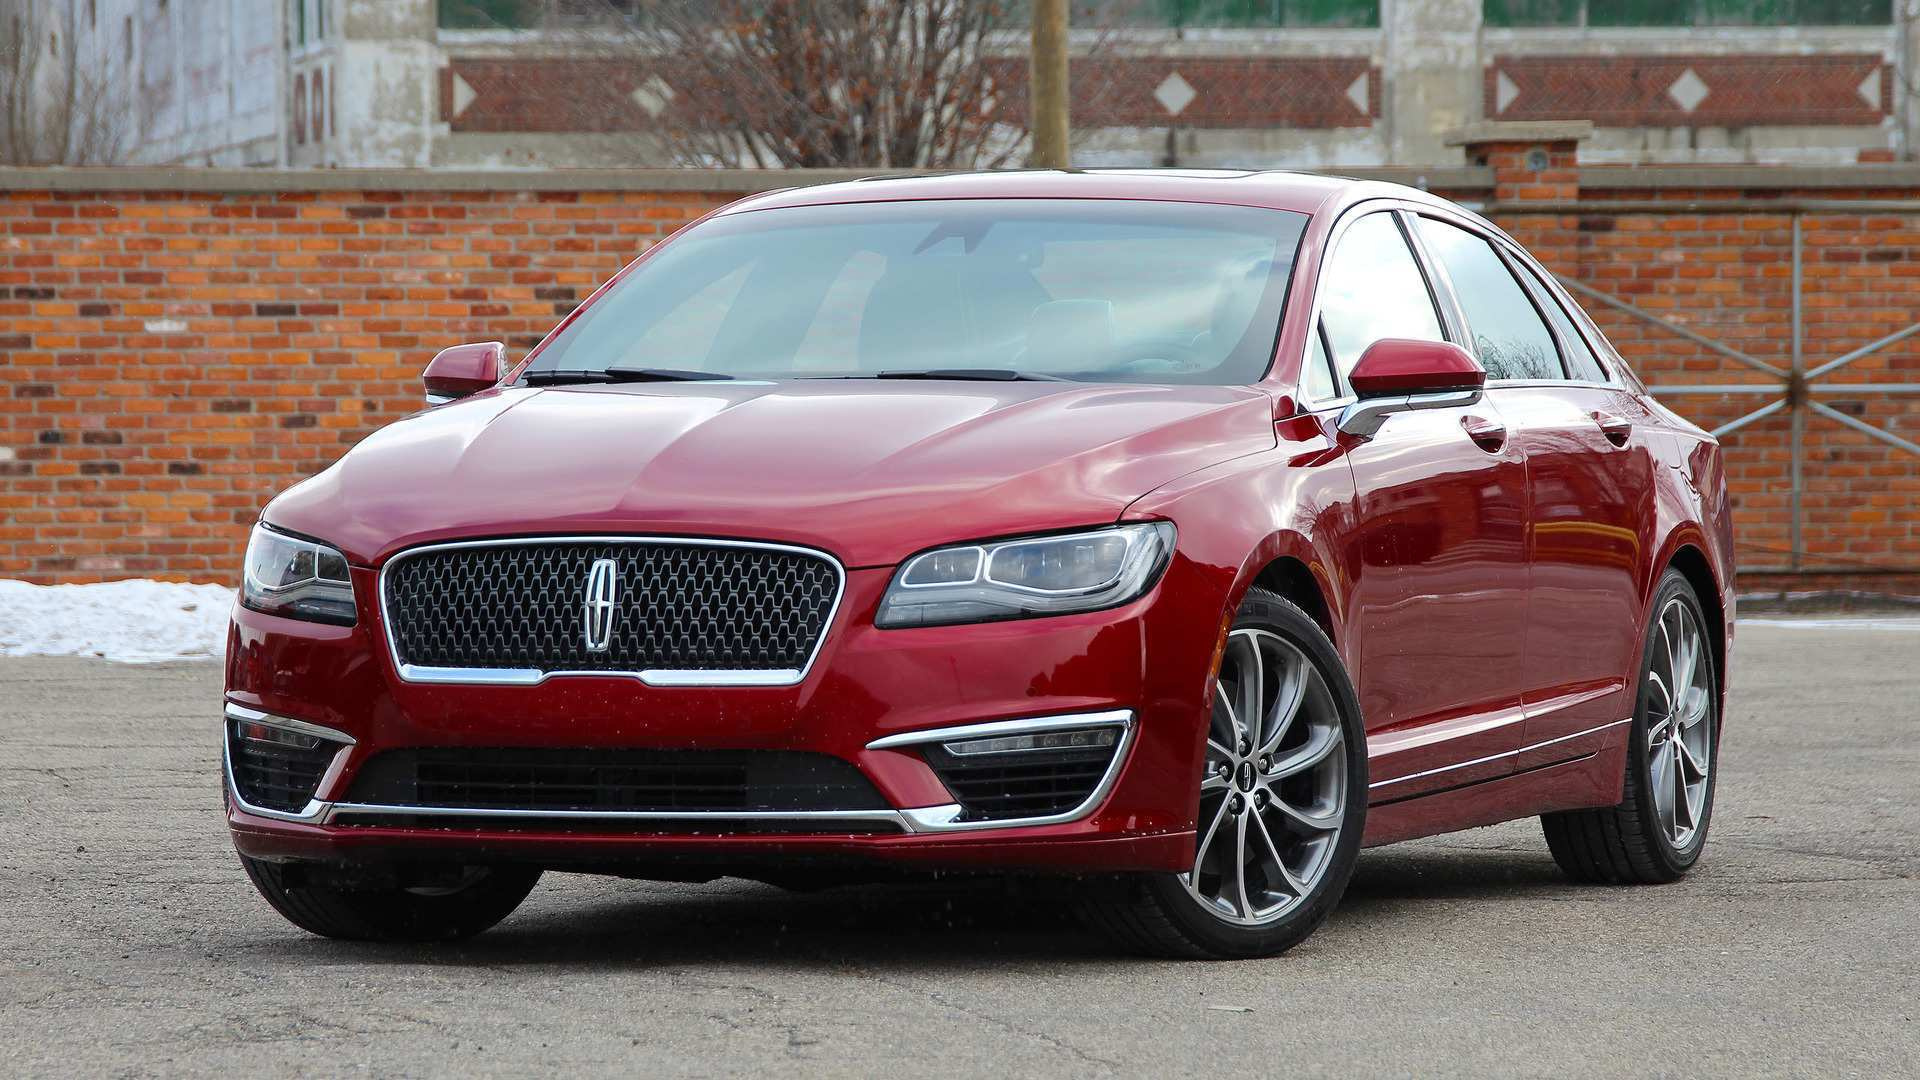 64 The Best 2020 Lincoln MKZ Configurations